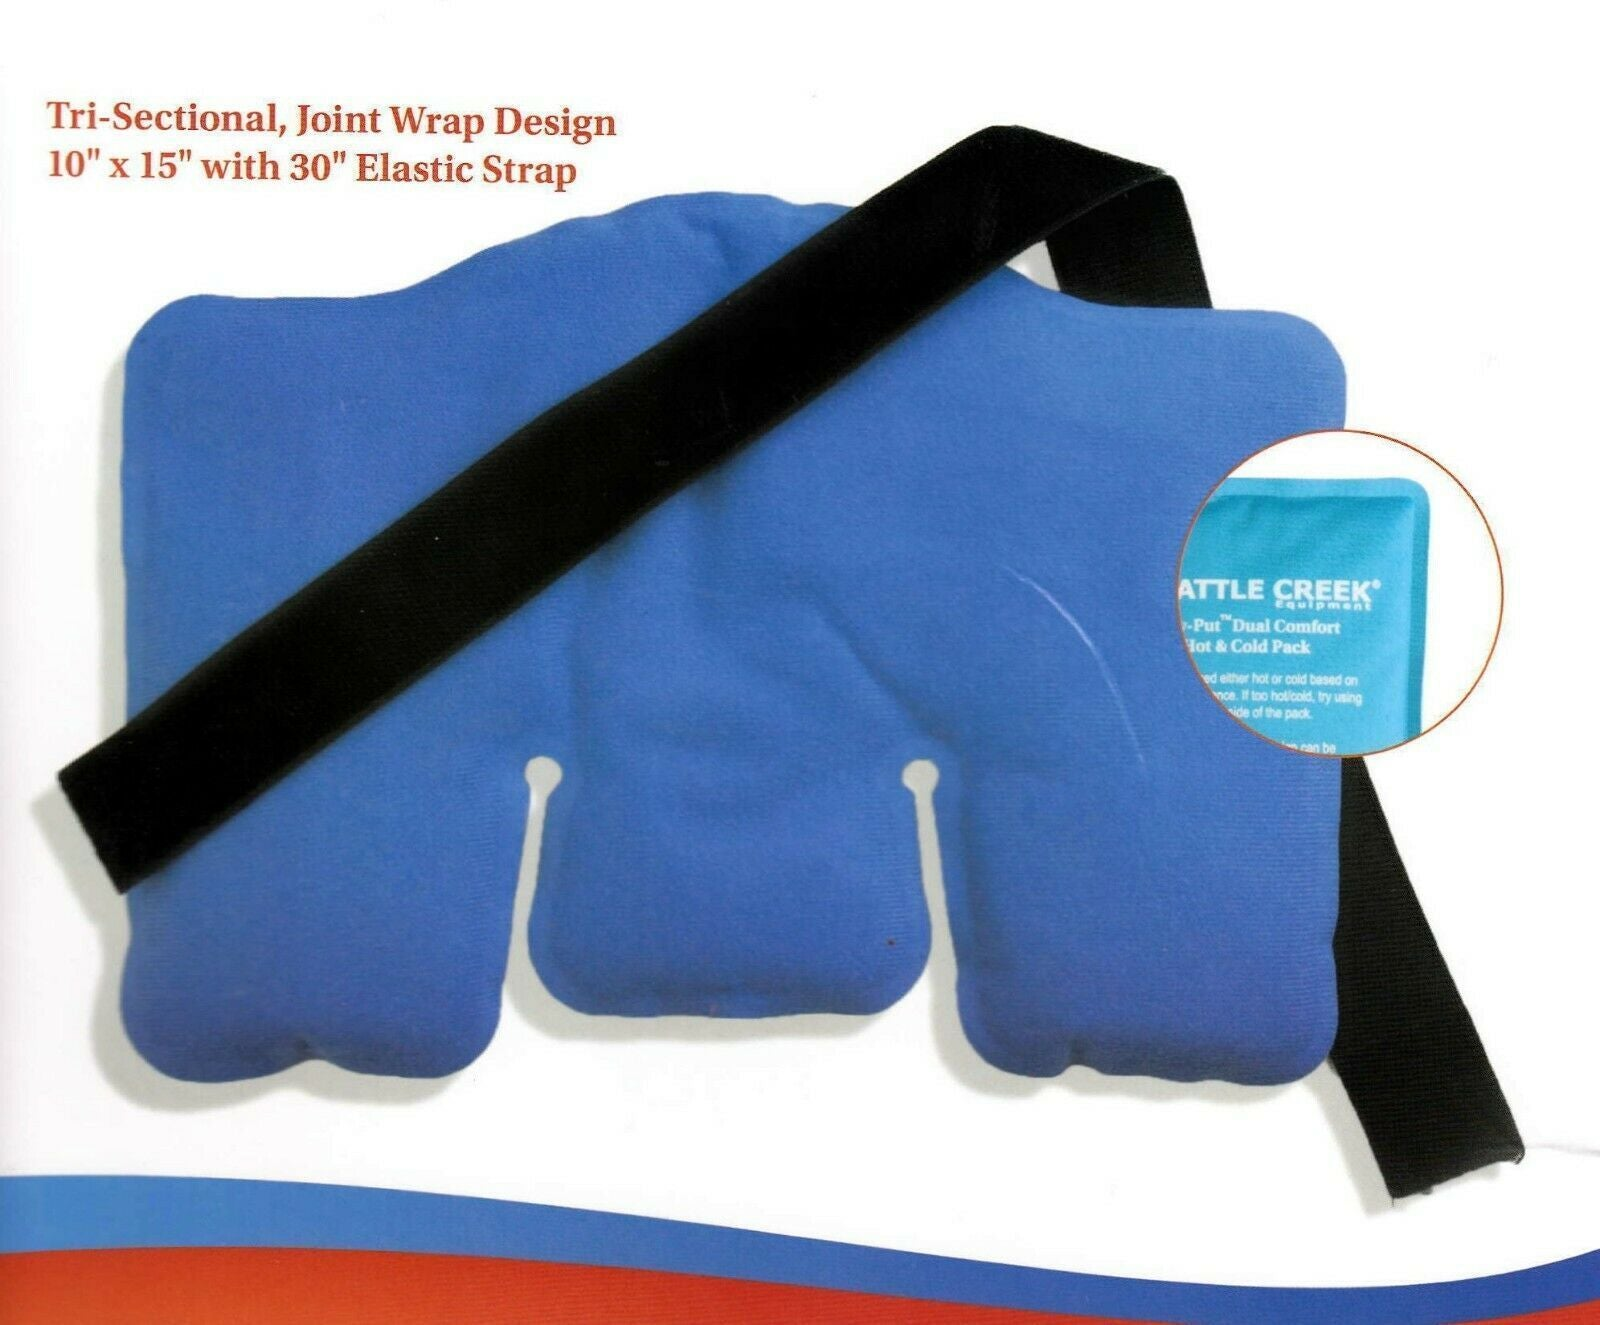 Battle Creek Heat Therapy Battle Creek Stay Put Dual Comfort Hot & Cold Therapy Wraps